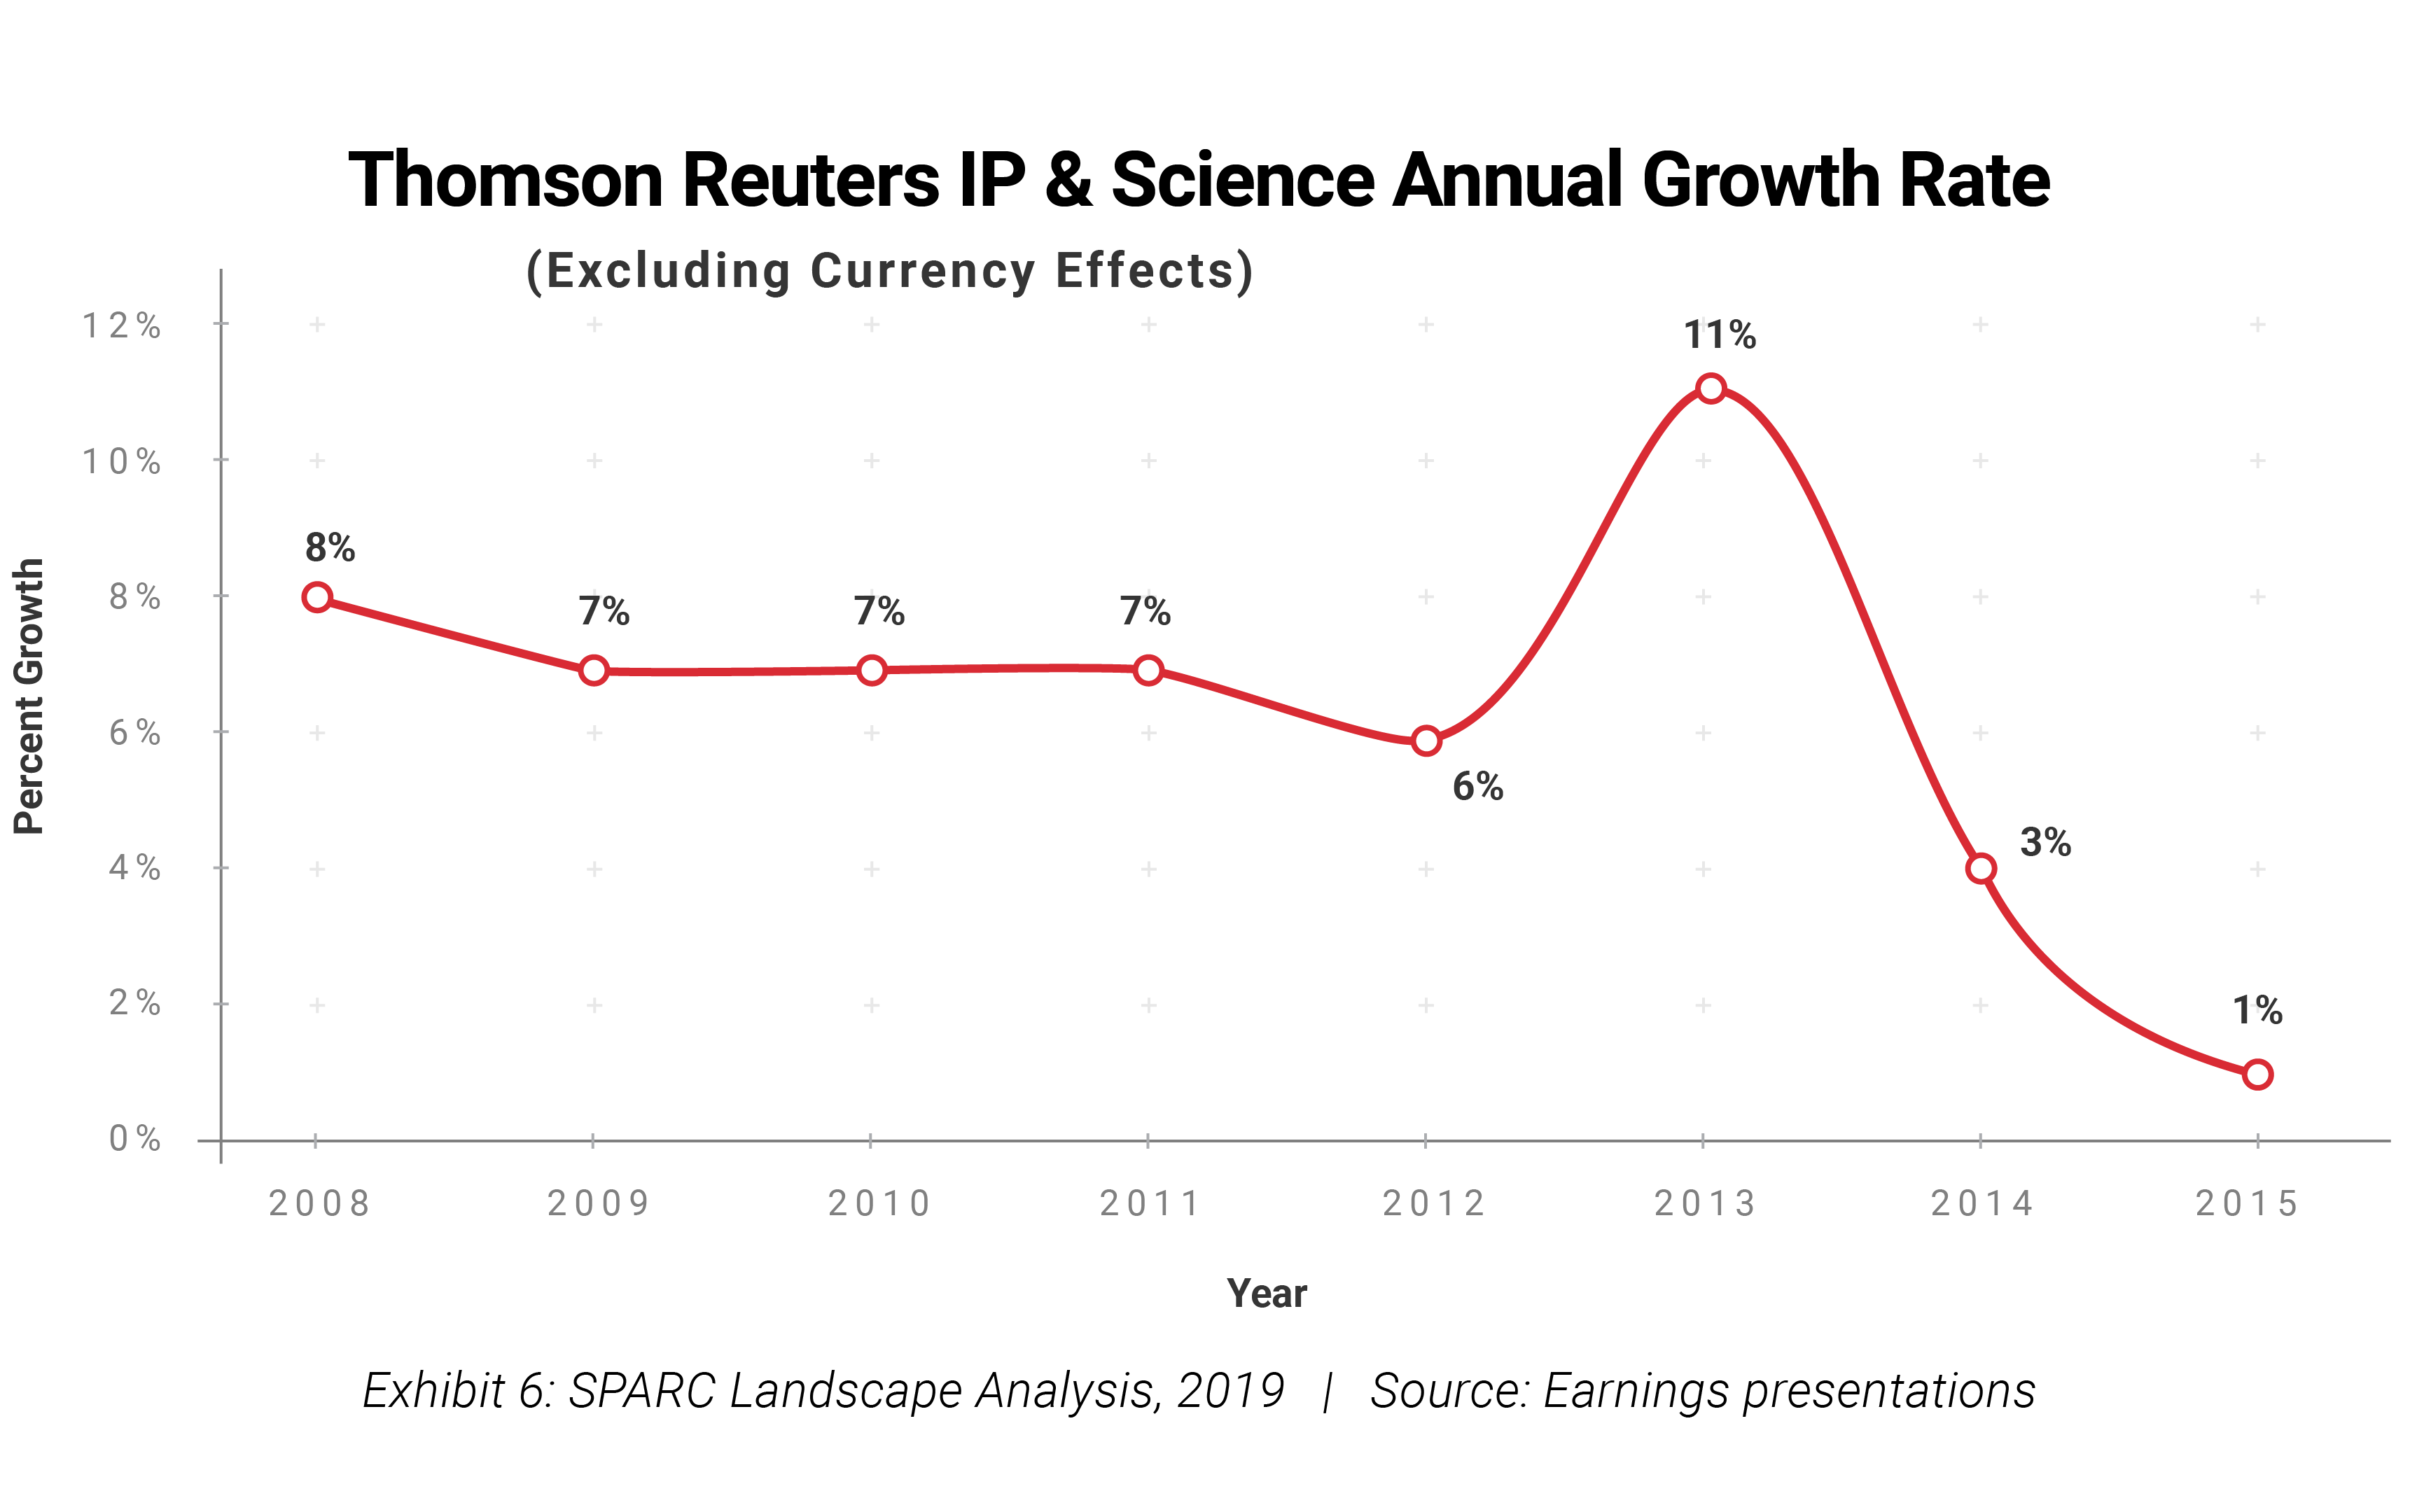 Thompson Reuters' IP & Science Annual Growth Rate